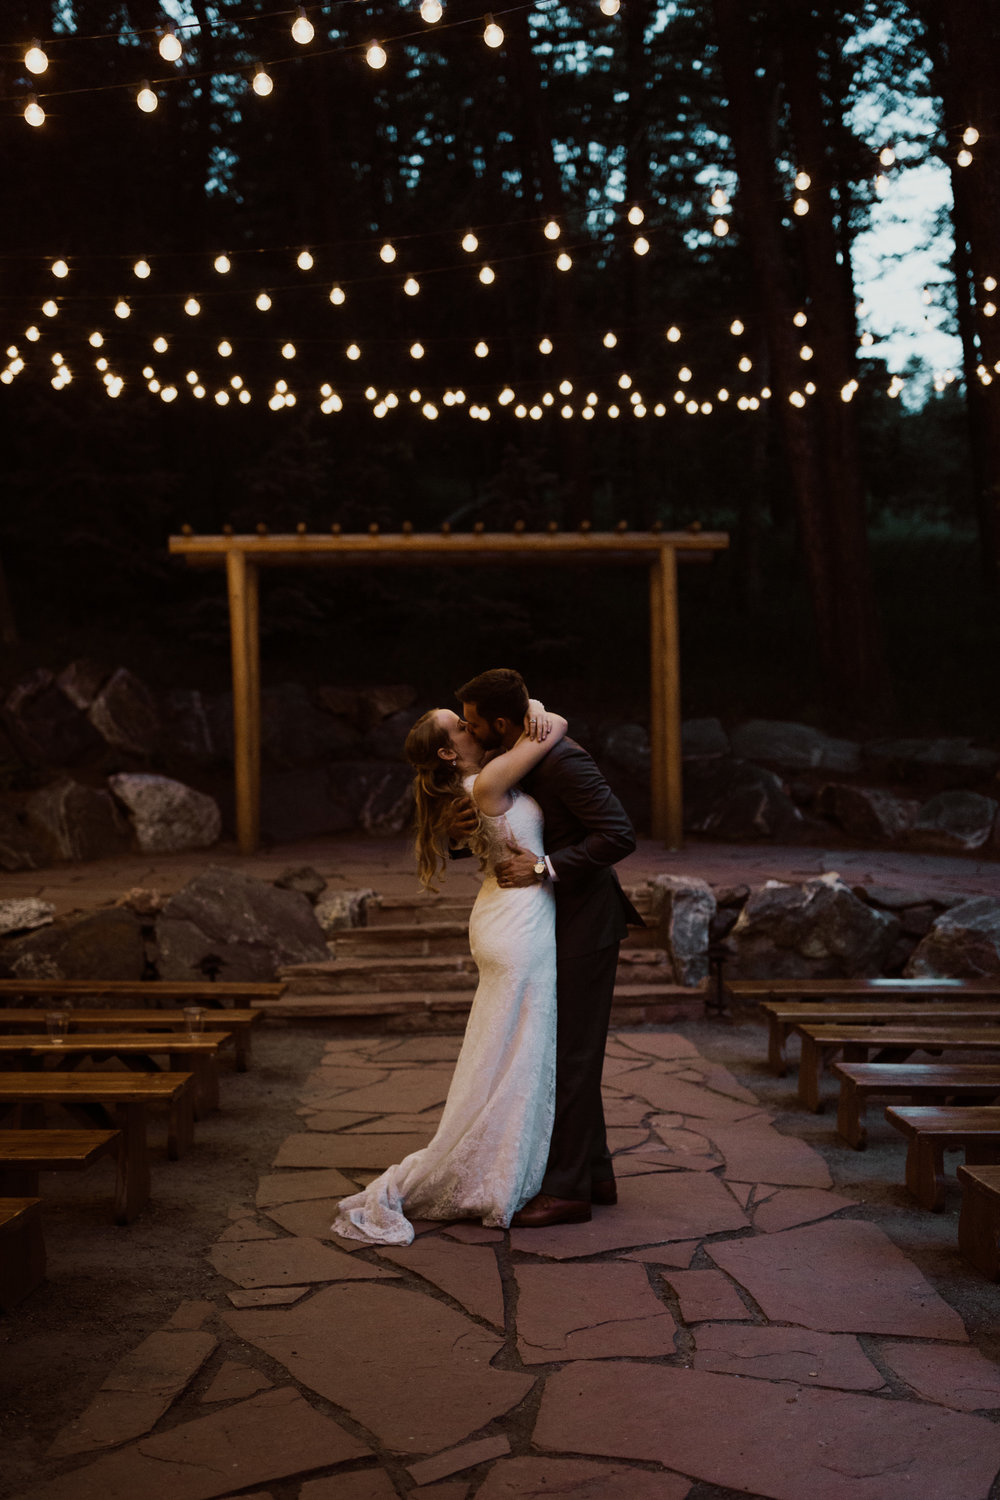 cedarandpines_intimate-colorado-forest-wedding-29.jpg